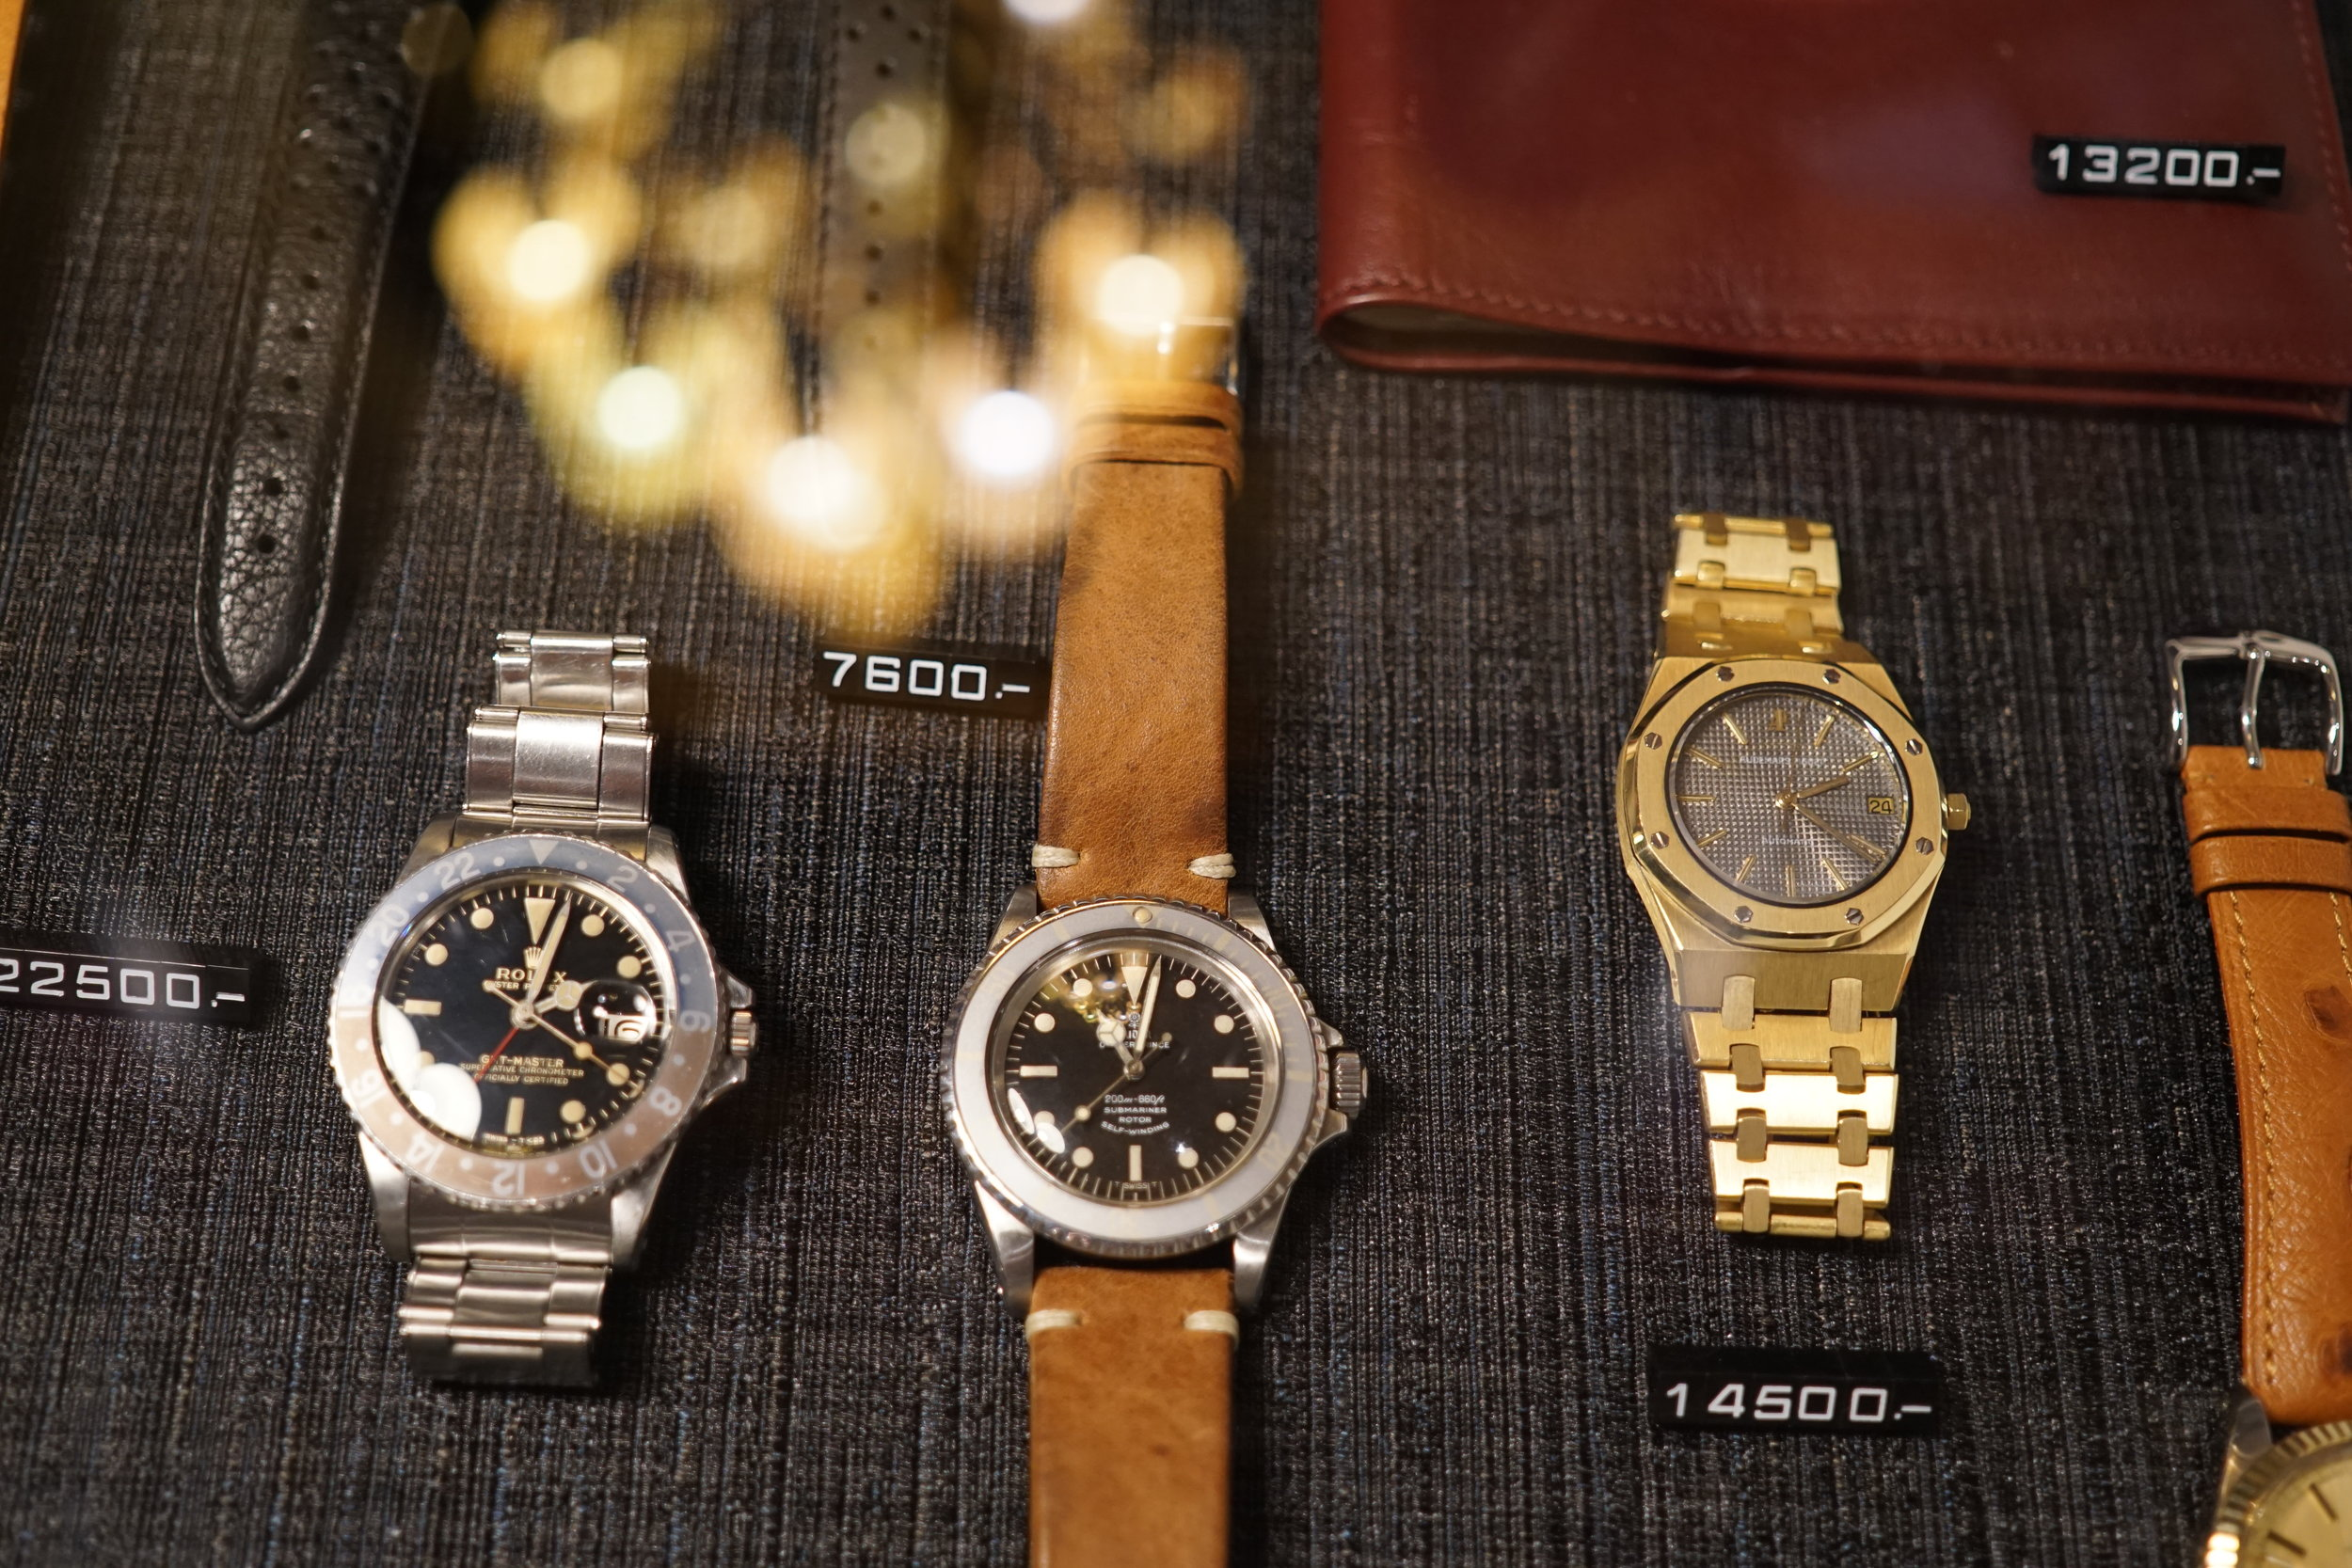 This trio would make any watch enthusiast very, very happy. From left to right: Rolex GMT Master ref. 1675, Tudor Submariner ref. 7928, and Audemars Piguet Royal Oak ref. 4100BA.